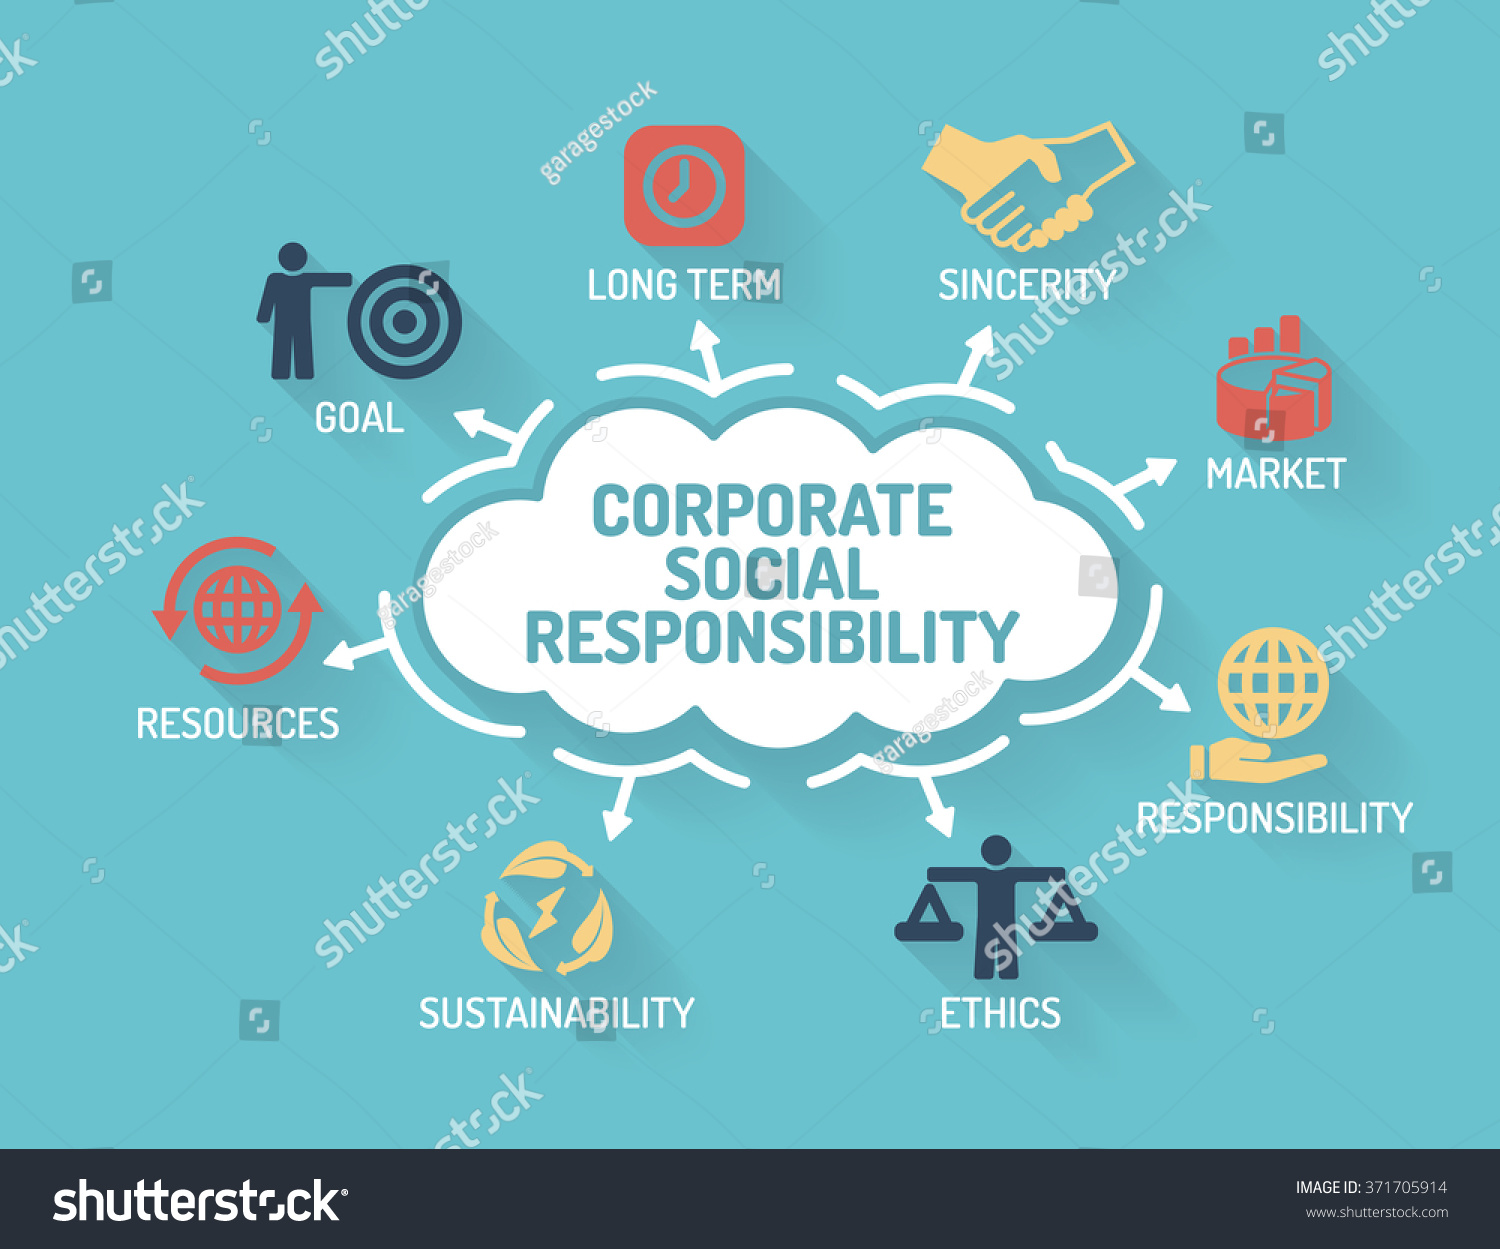 Corporate Social Responsibility - Chart With Keywords And Icons - Flat Design Stock Vector Illustration 371705914 : Shutterstock